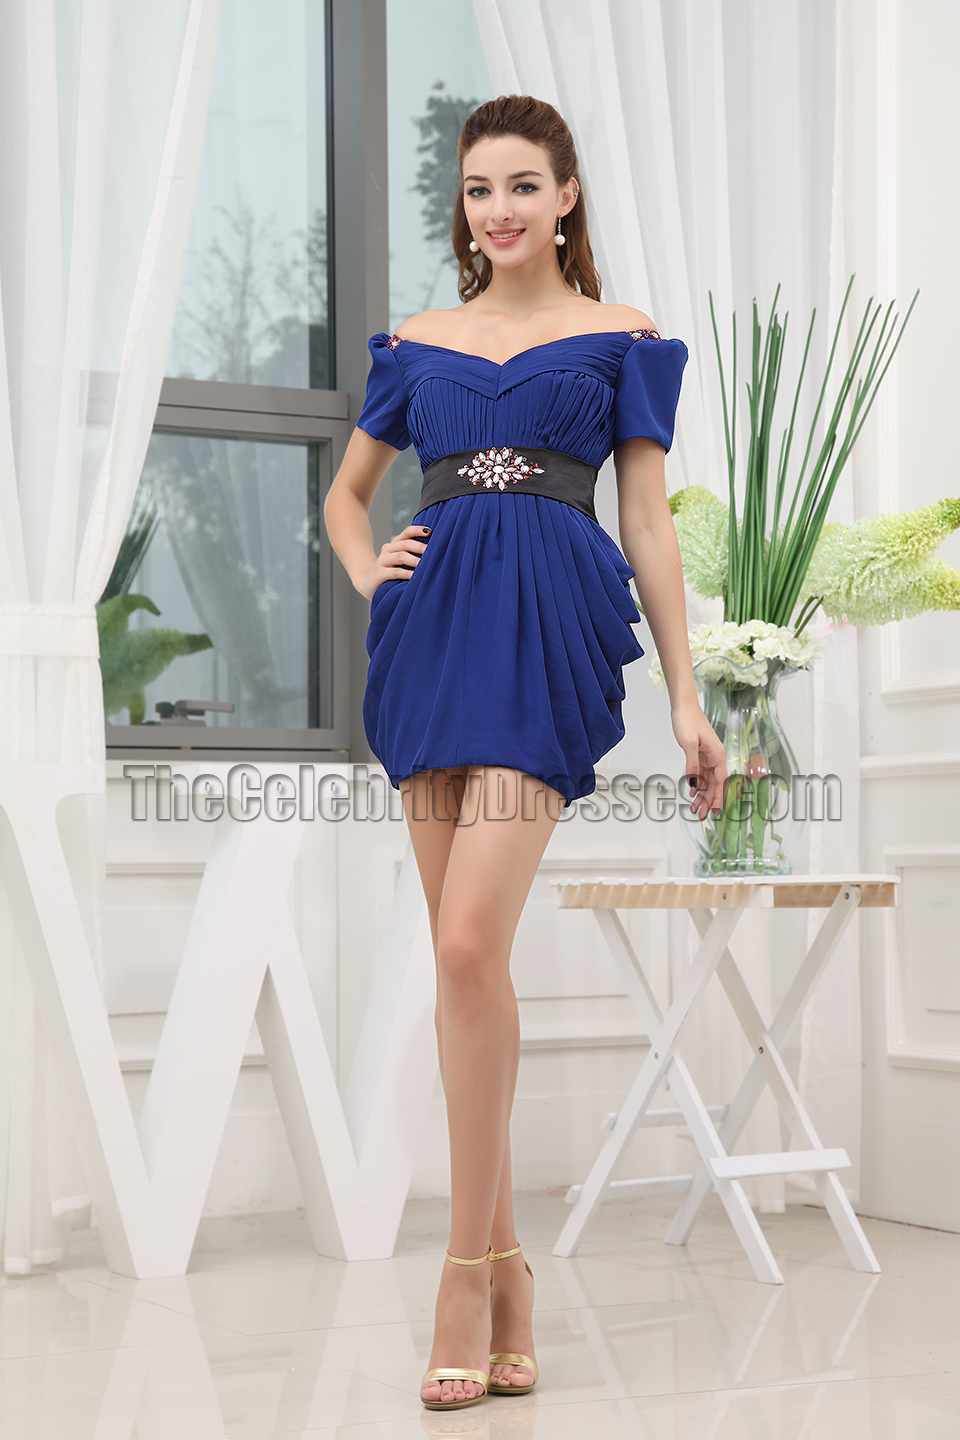 2aeaa2dce676 Royal Blue Mini Off-the-Shoulder Party Homecoming Dresses ...